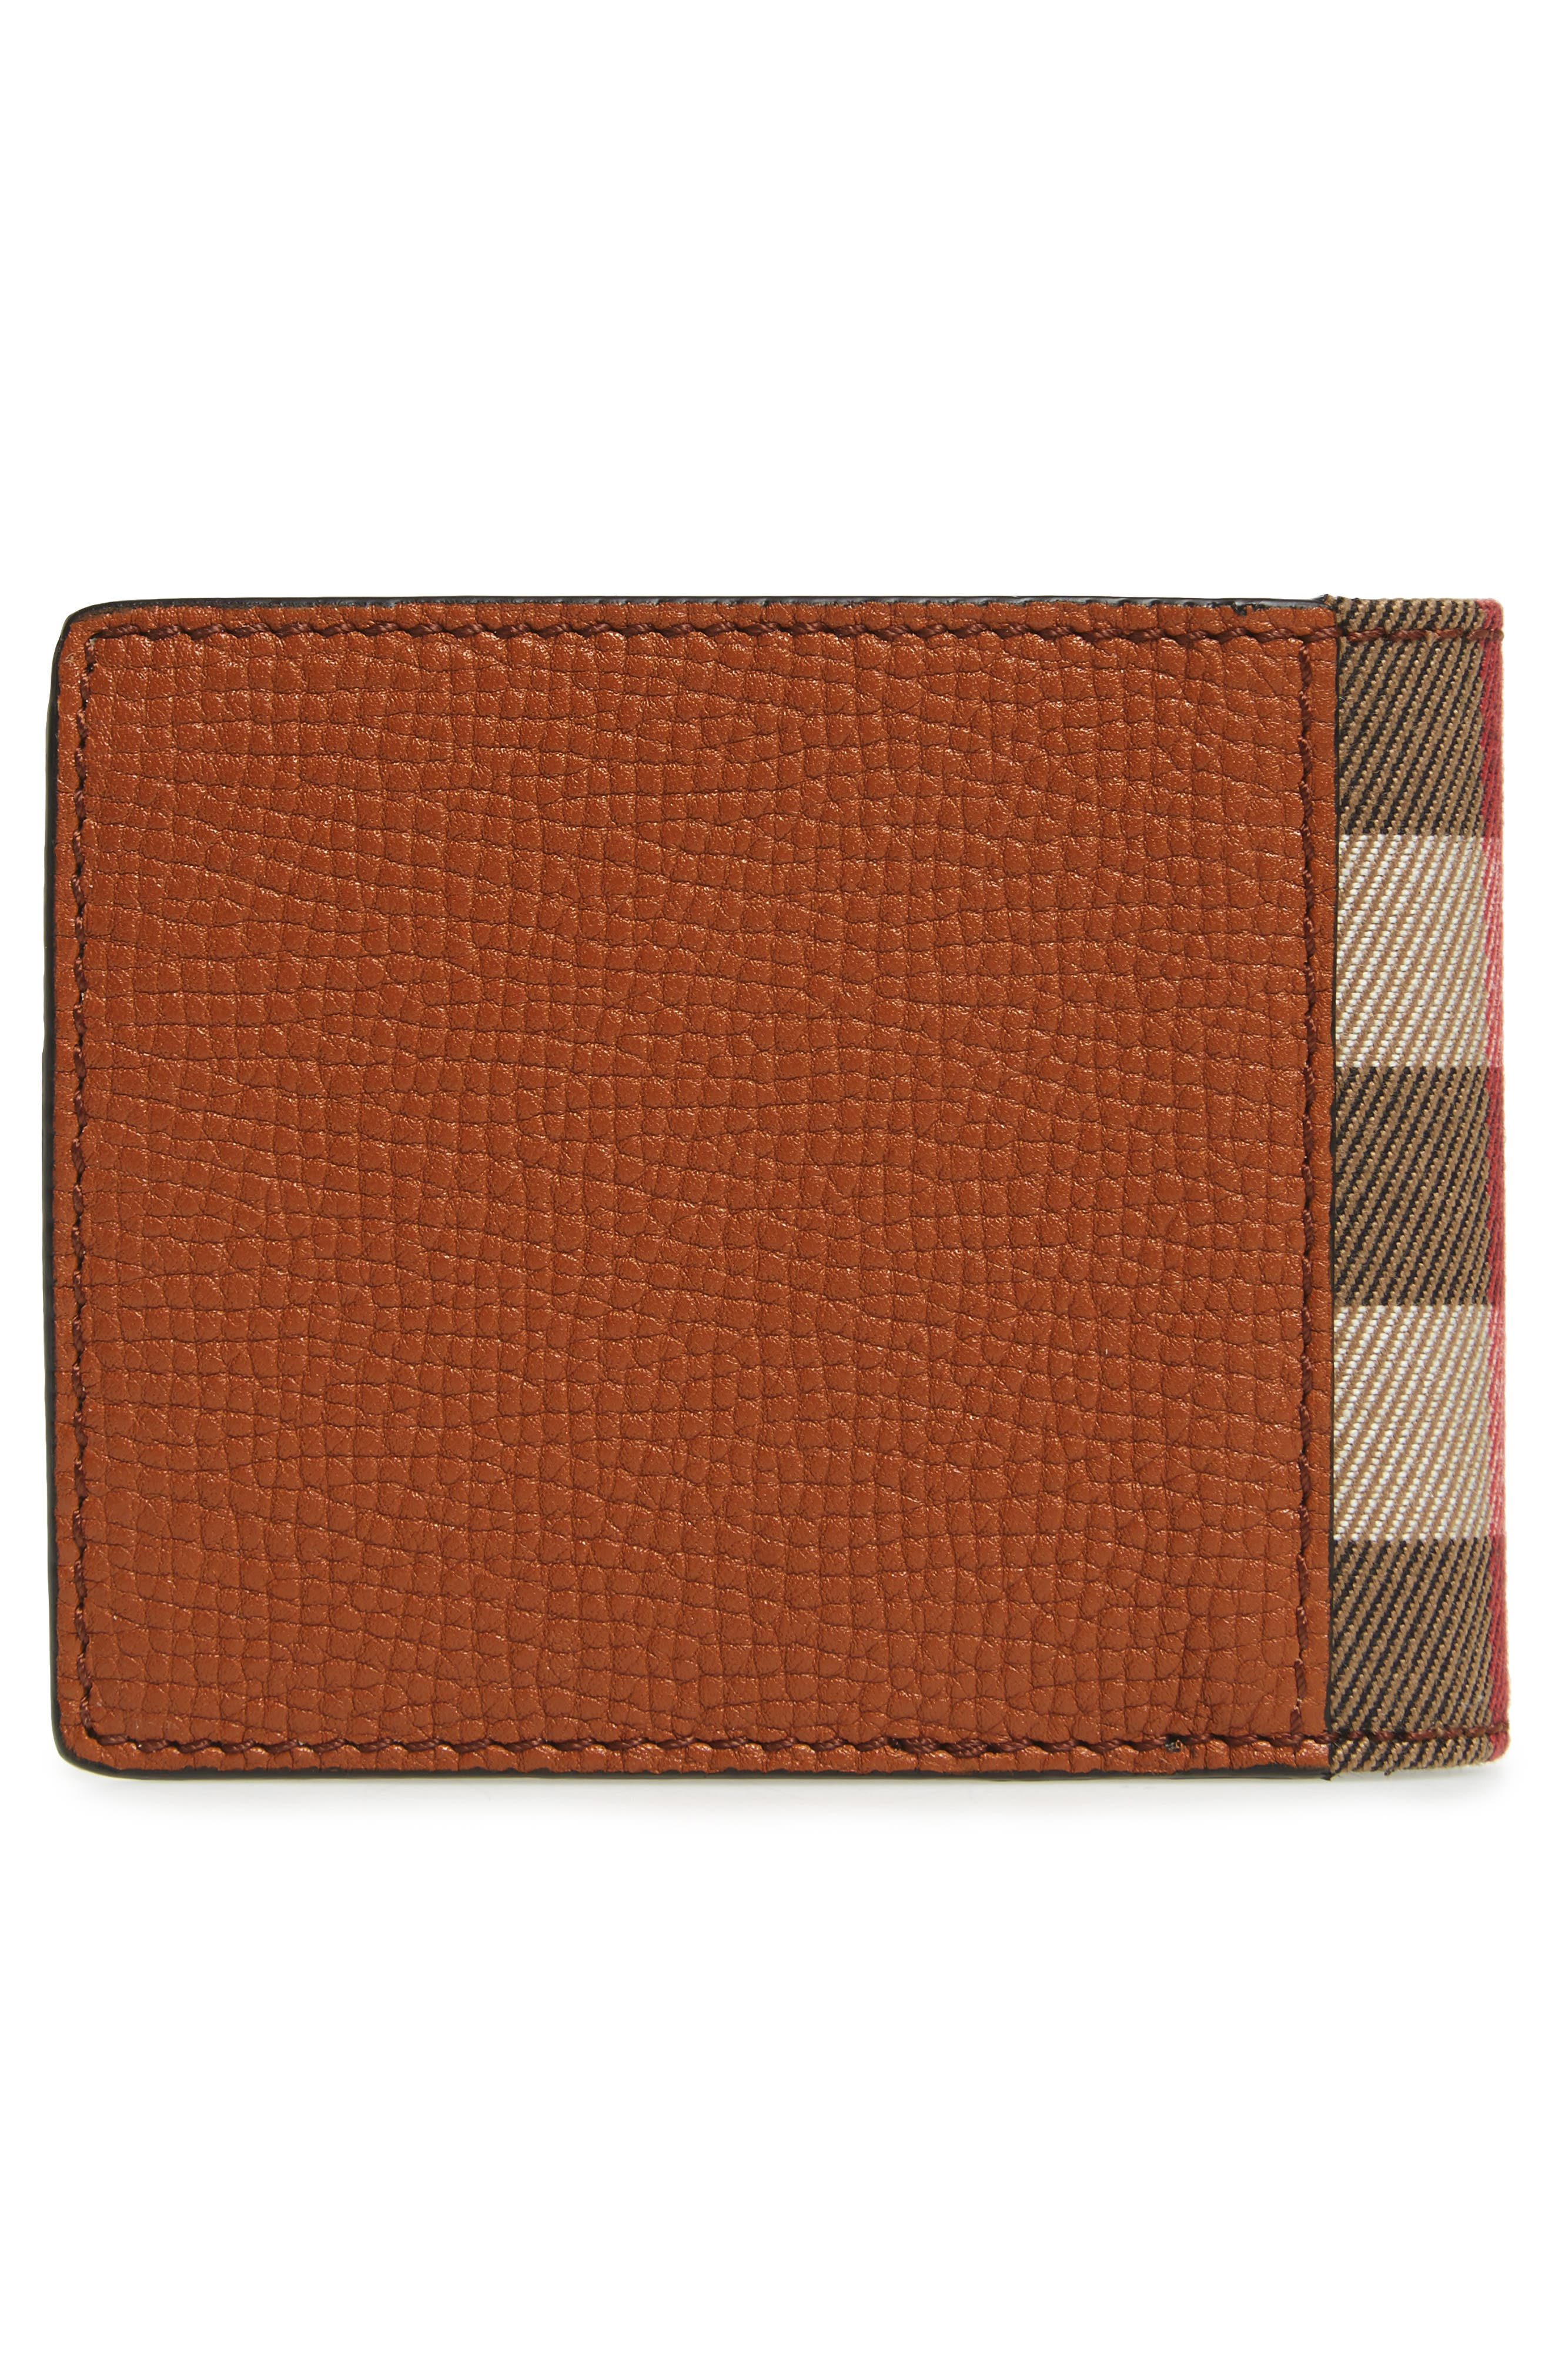 Leather Wallet,                             Alternate thumbnail 3, color,                             230